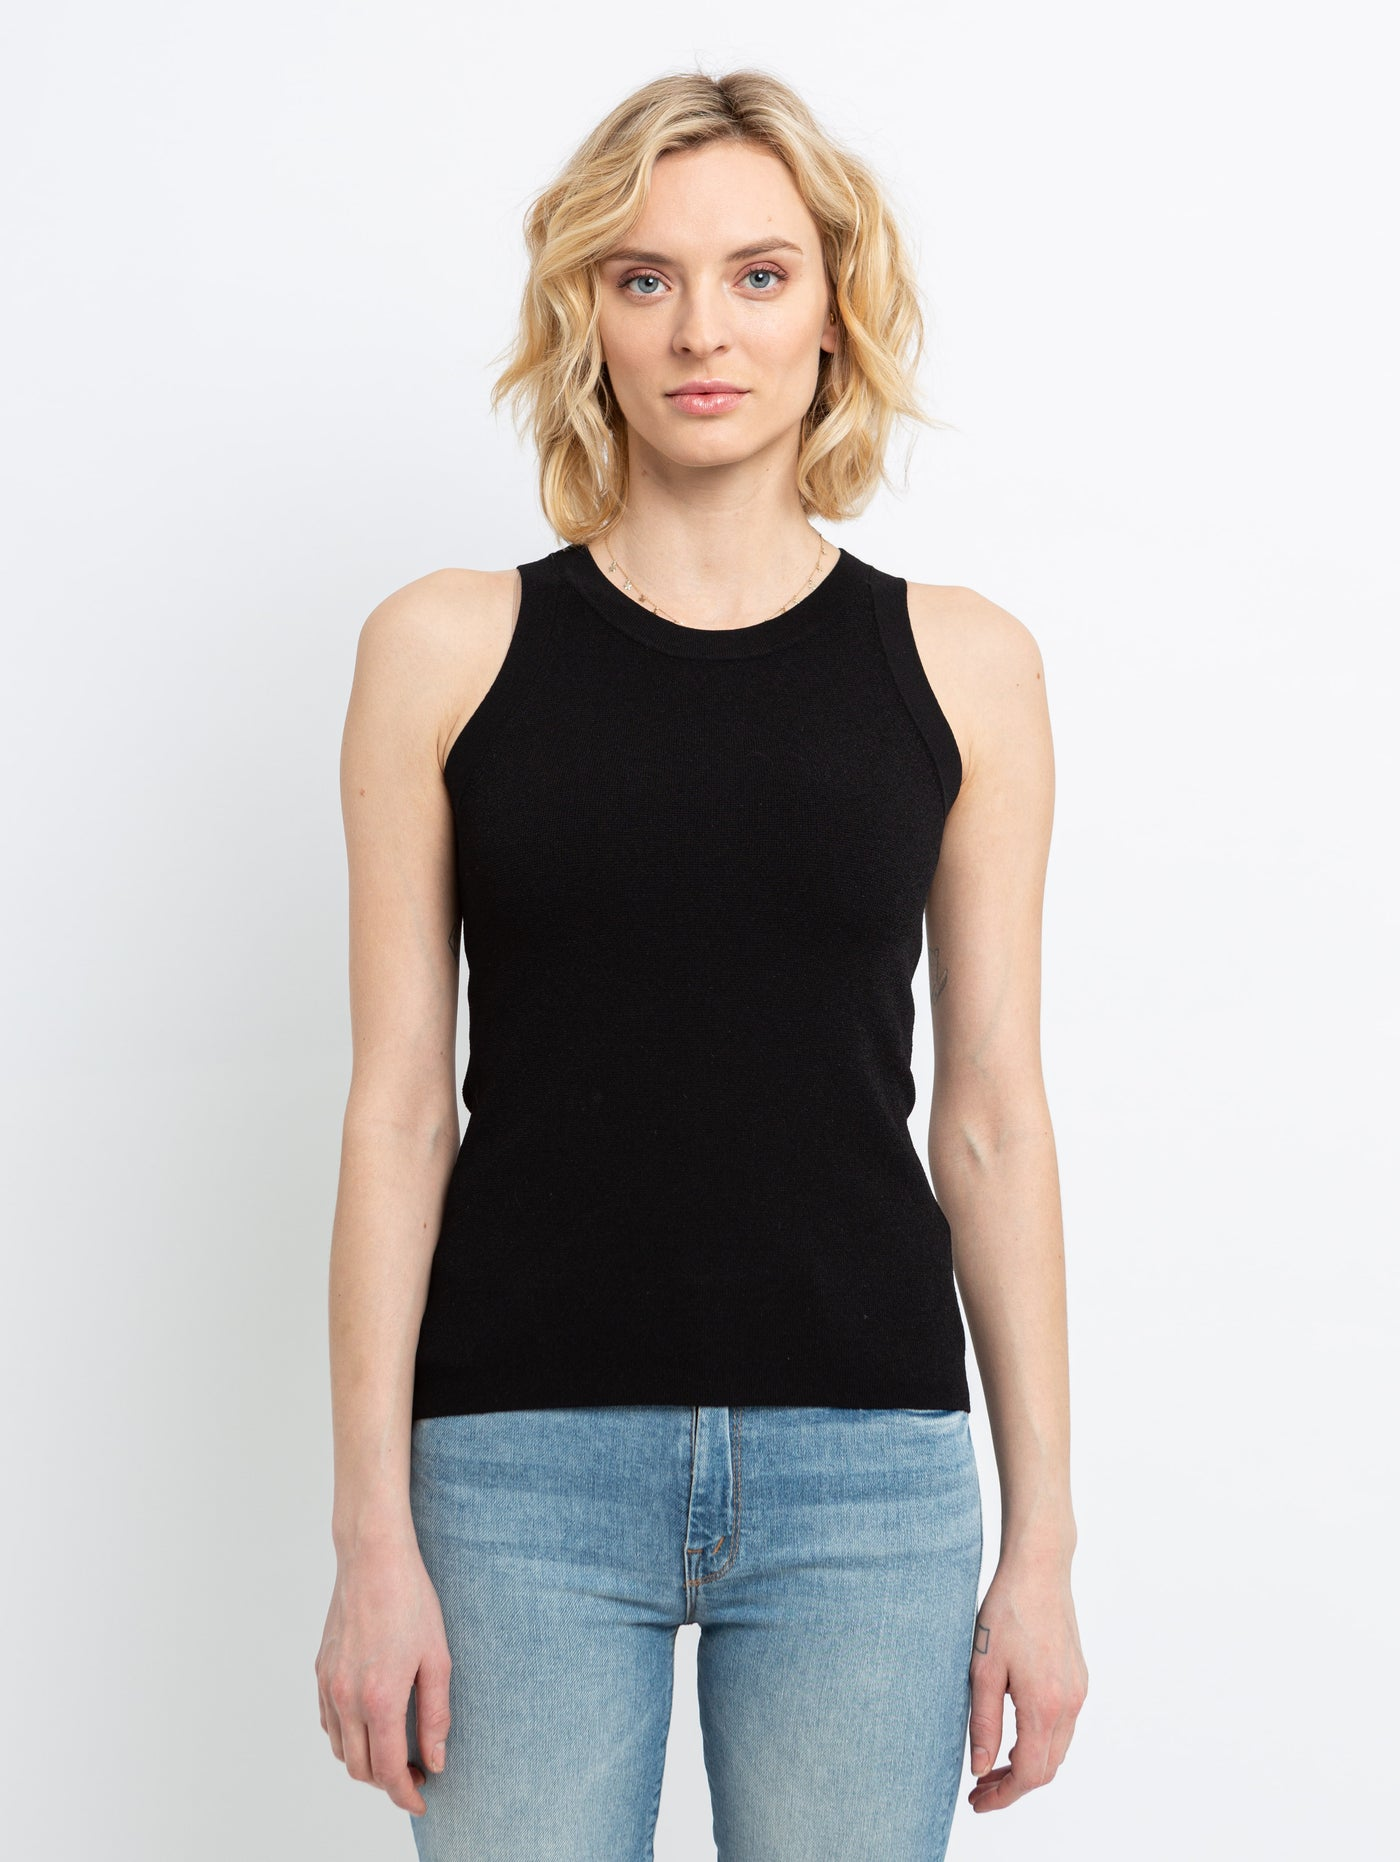 Milano Sweater Tank Top-AUTUMN CASHMERE-Over the Rainbow